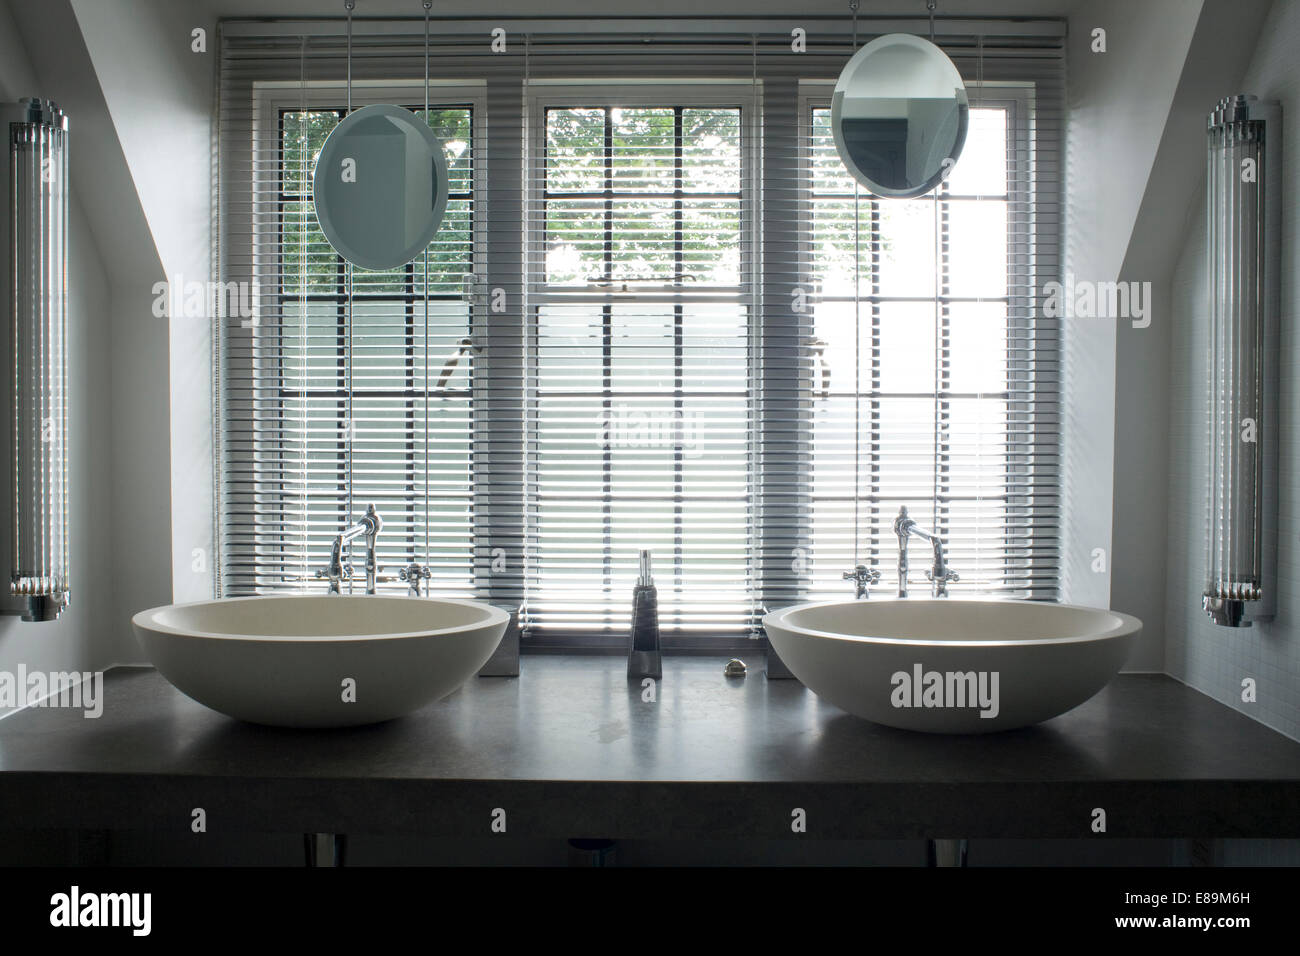 Designer Bathroom Blinds venetian blinds on window above double bowl washbasin on shelf